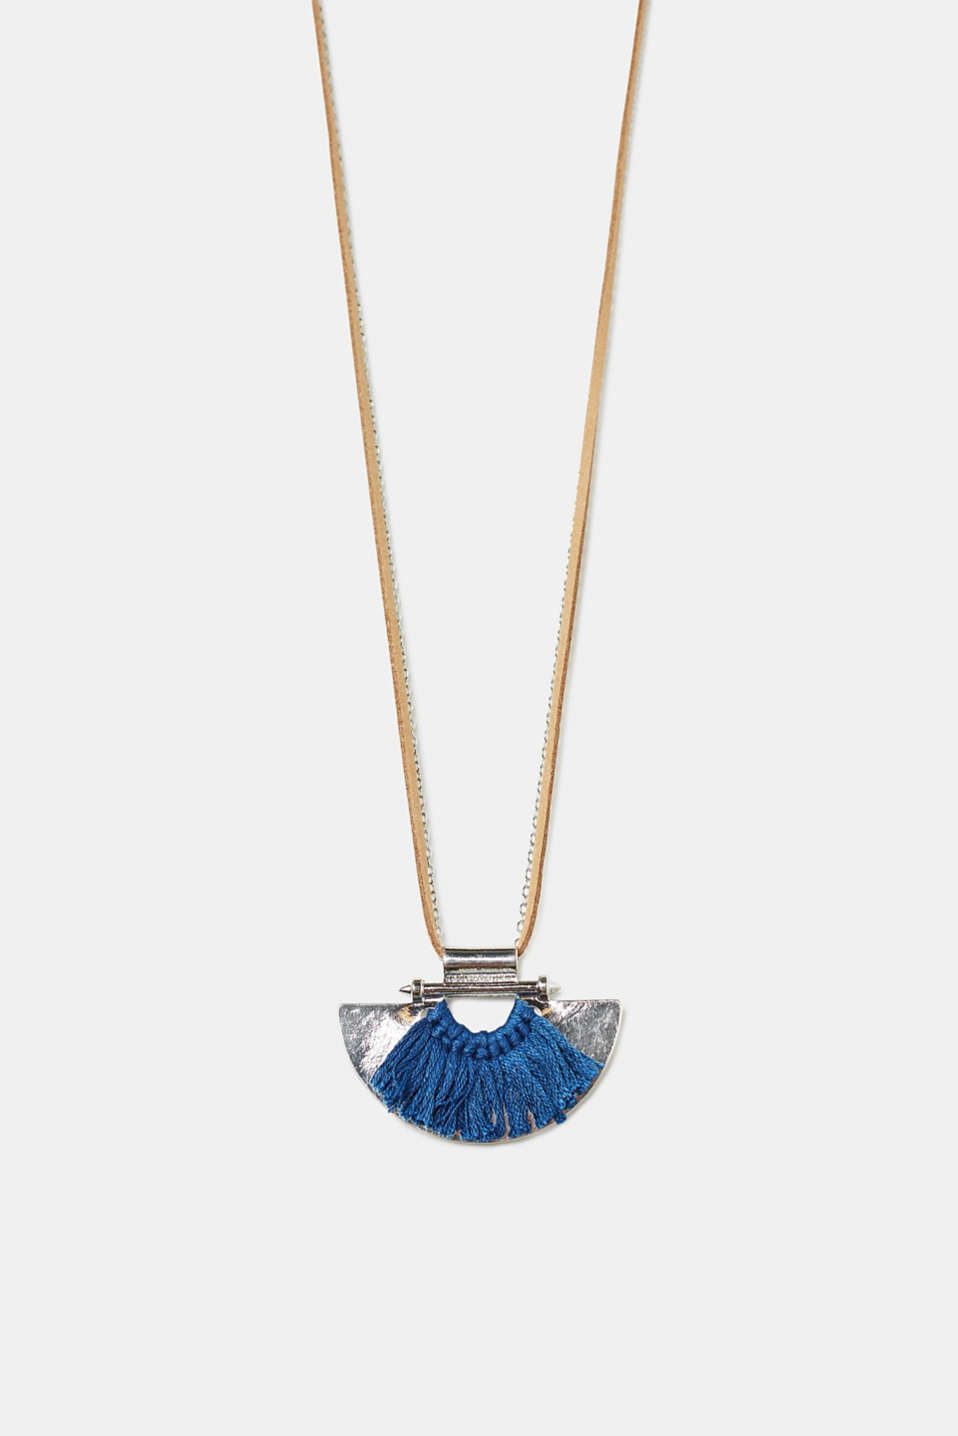 Esprit - Long necklace with a fringed pendant